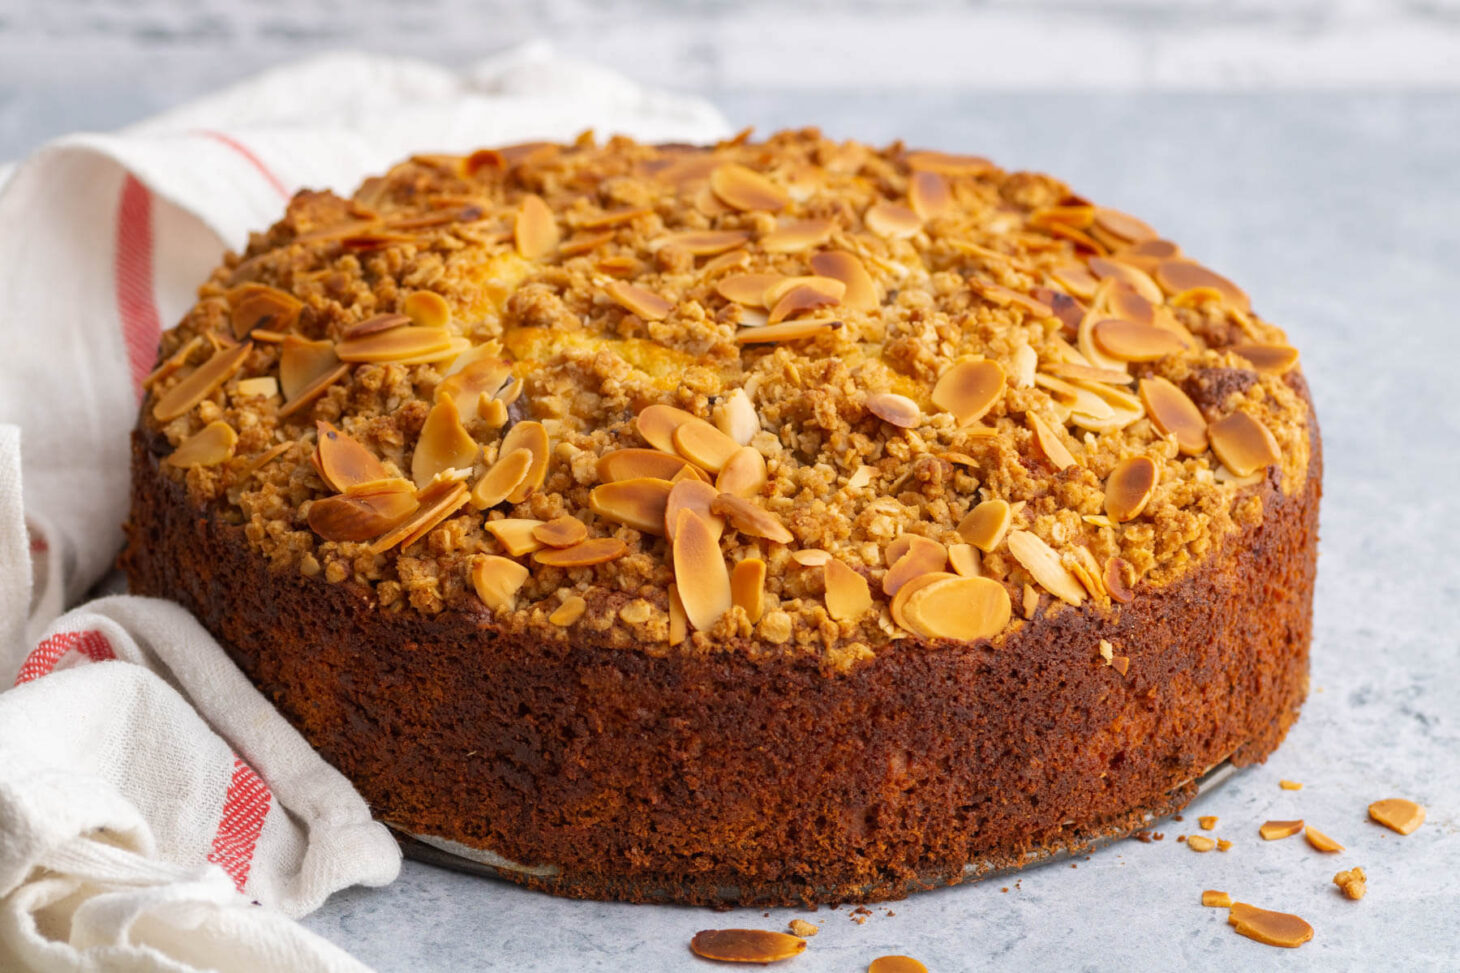 A whole golden baked almond crumble topped Pear Ricotta Cake.